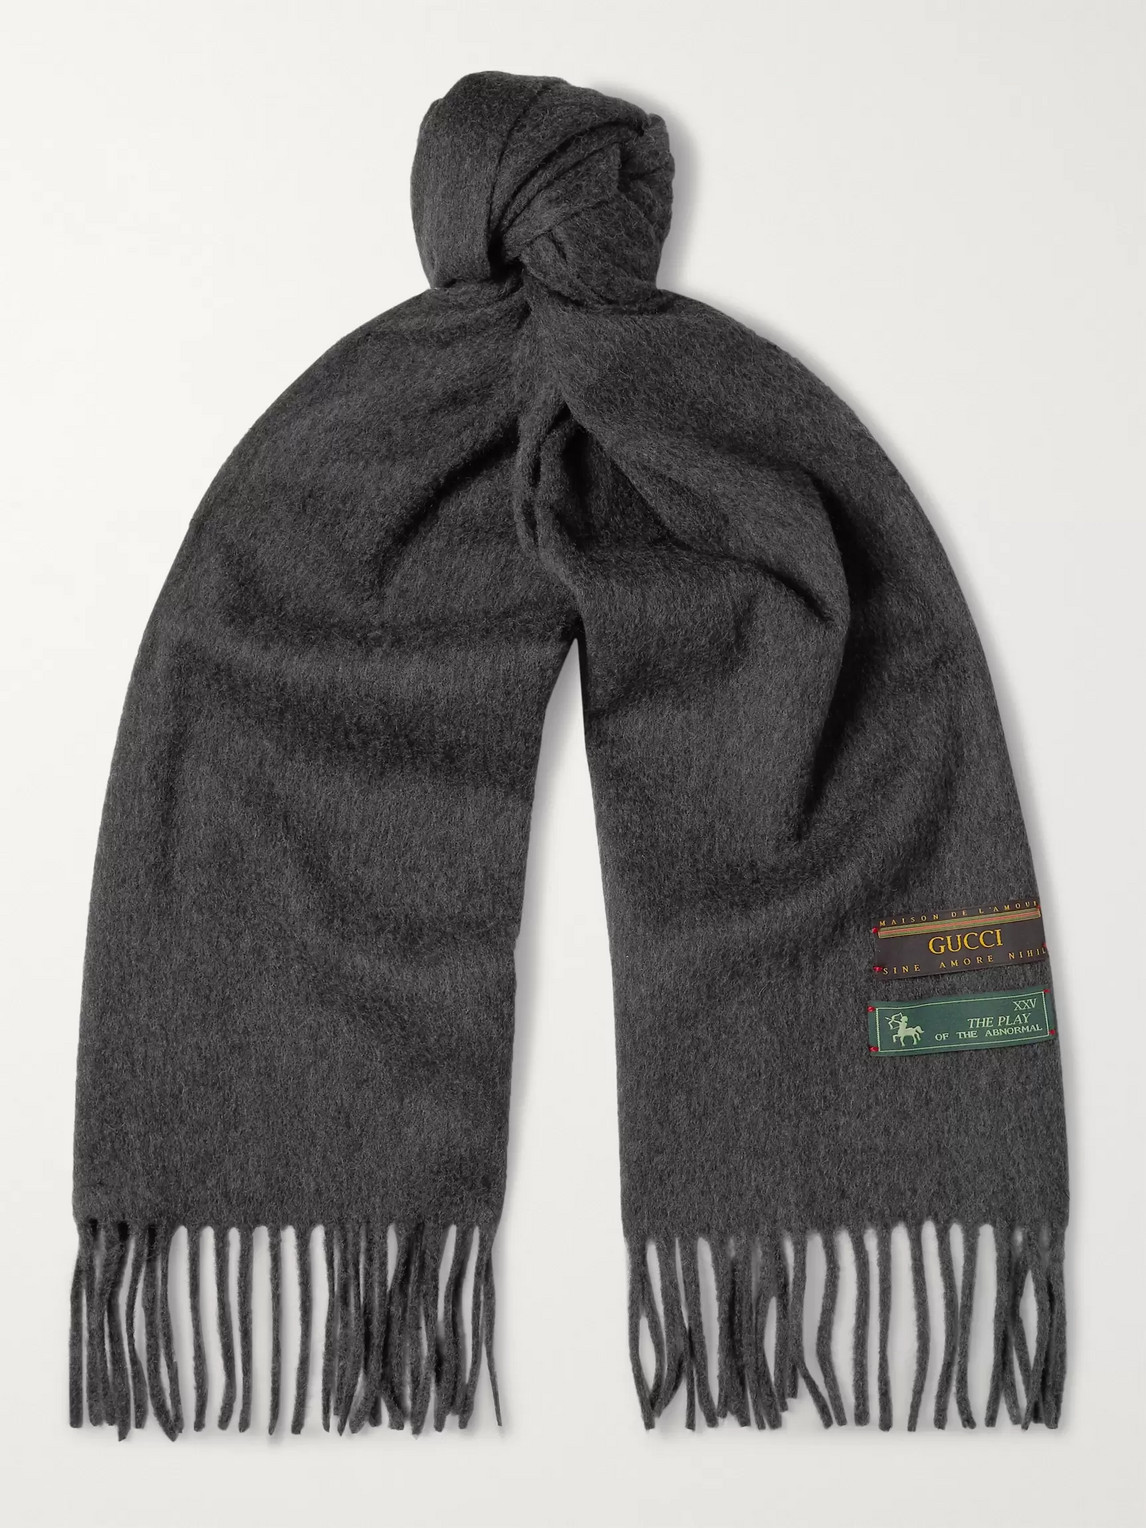 gucci - fringed wool and cashmere-blend scarf - men - gray